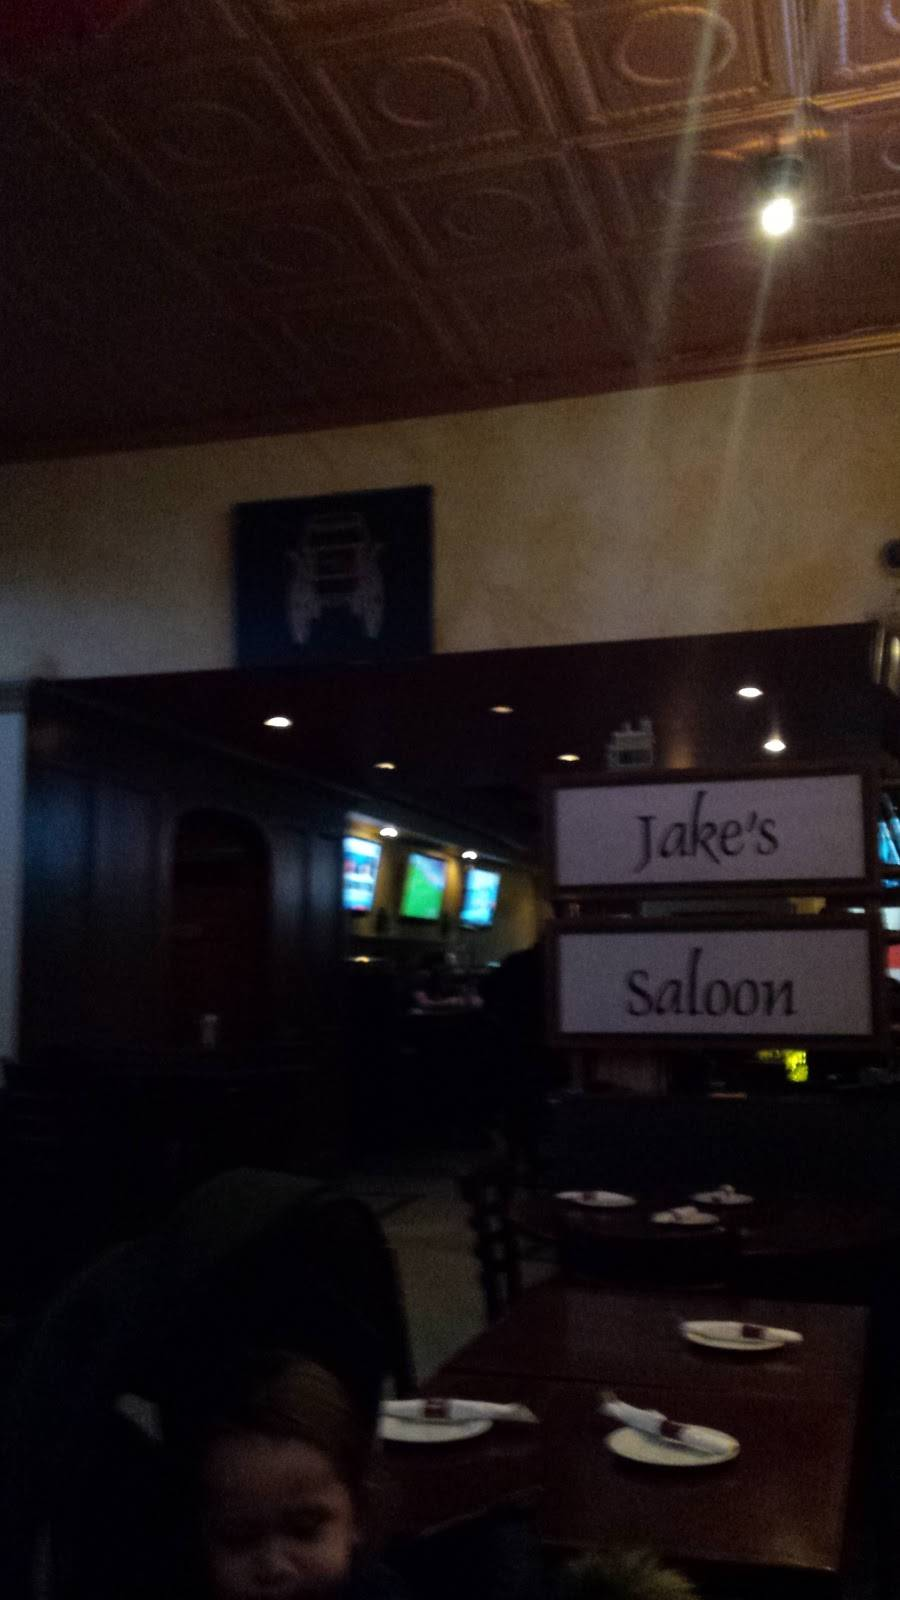 Jakes Saloon NYC | restaurant | 202 9th Ave, New York, NY 10011, USA | 2123665110 OR +1 212-366-5110